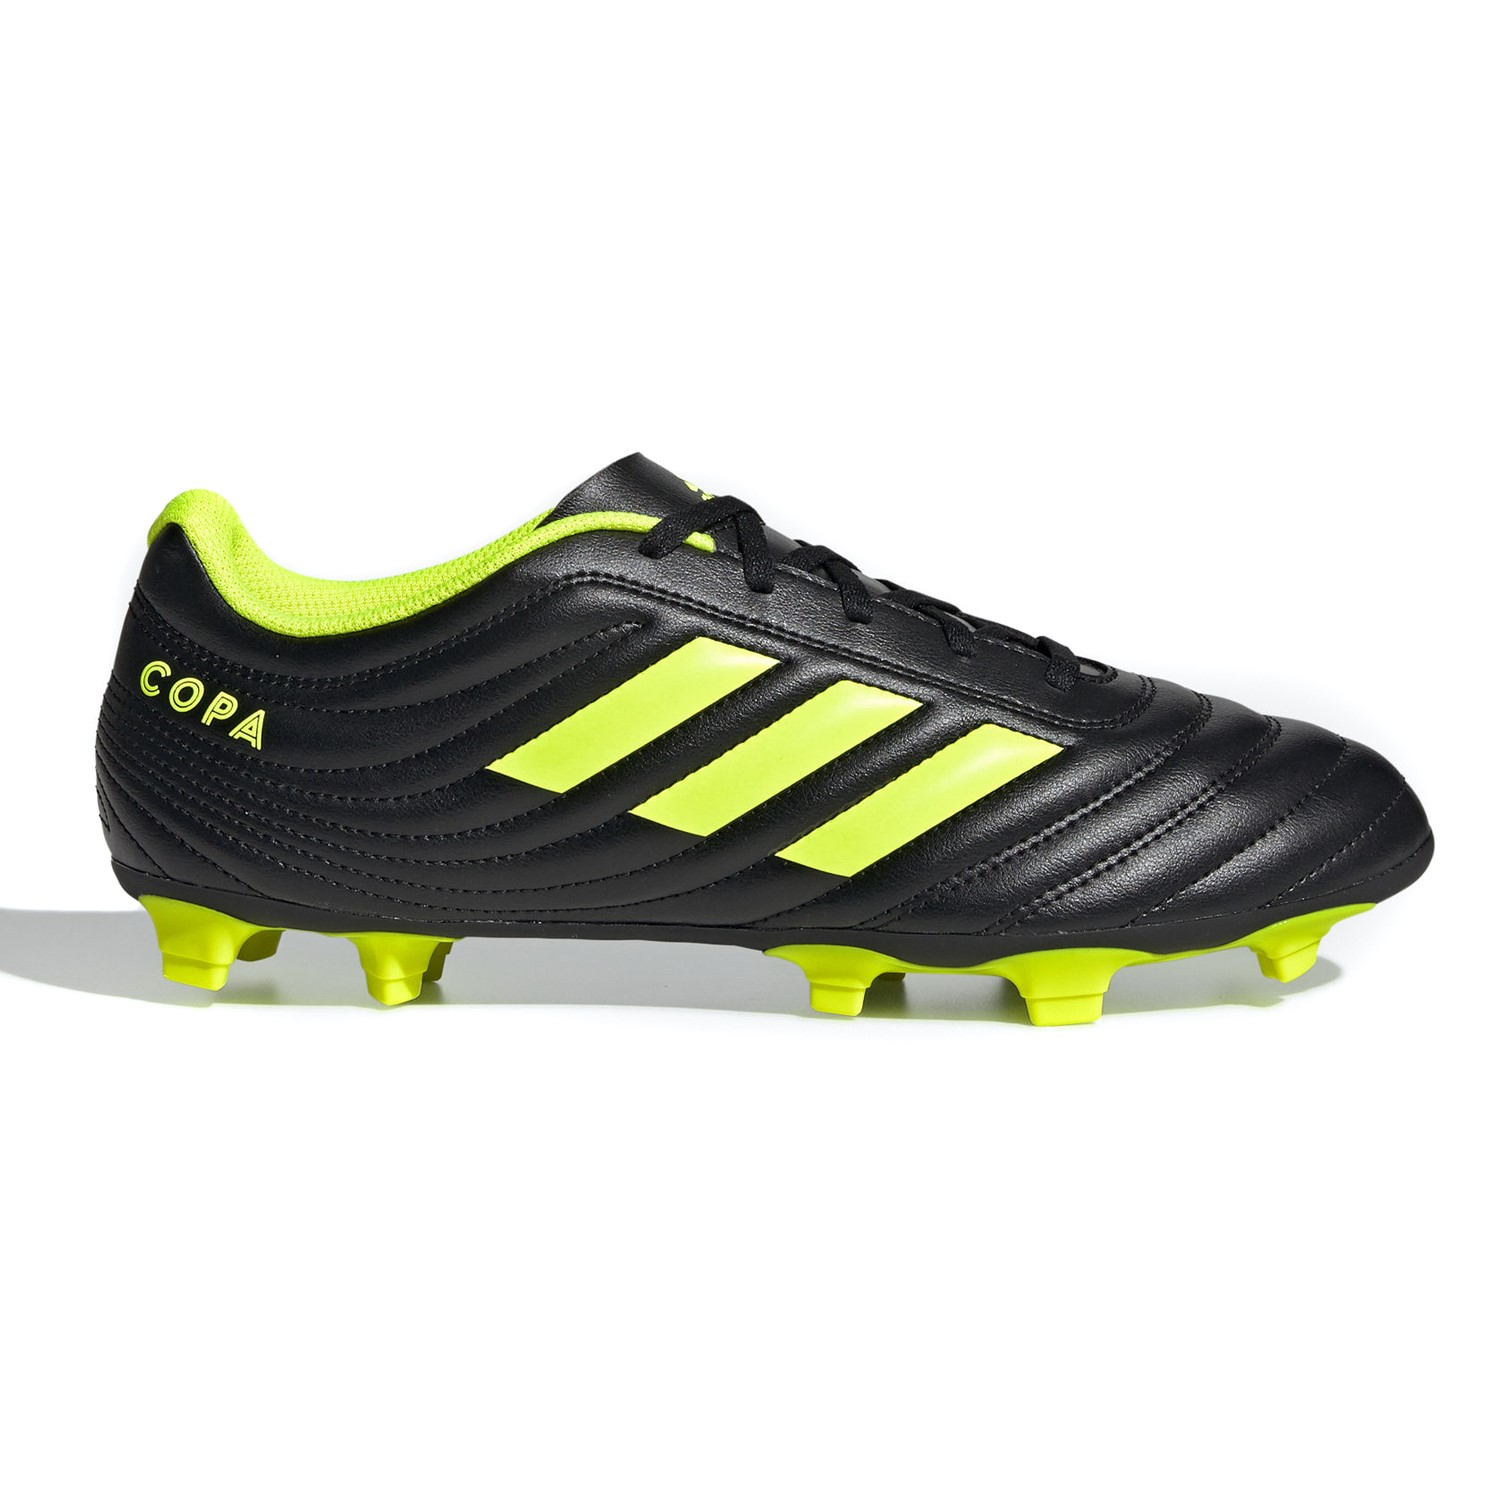 the best attitude 96830 22ff9 Adidas Copa 19.4 FG - Mens Football Boots - Core Black Silver Yellow